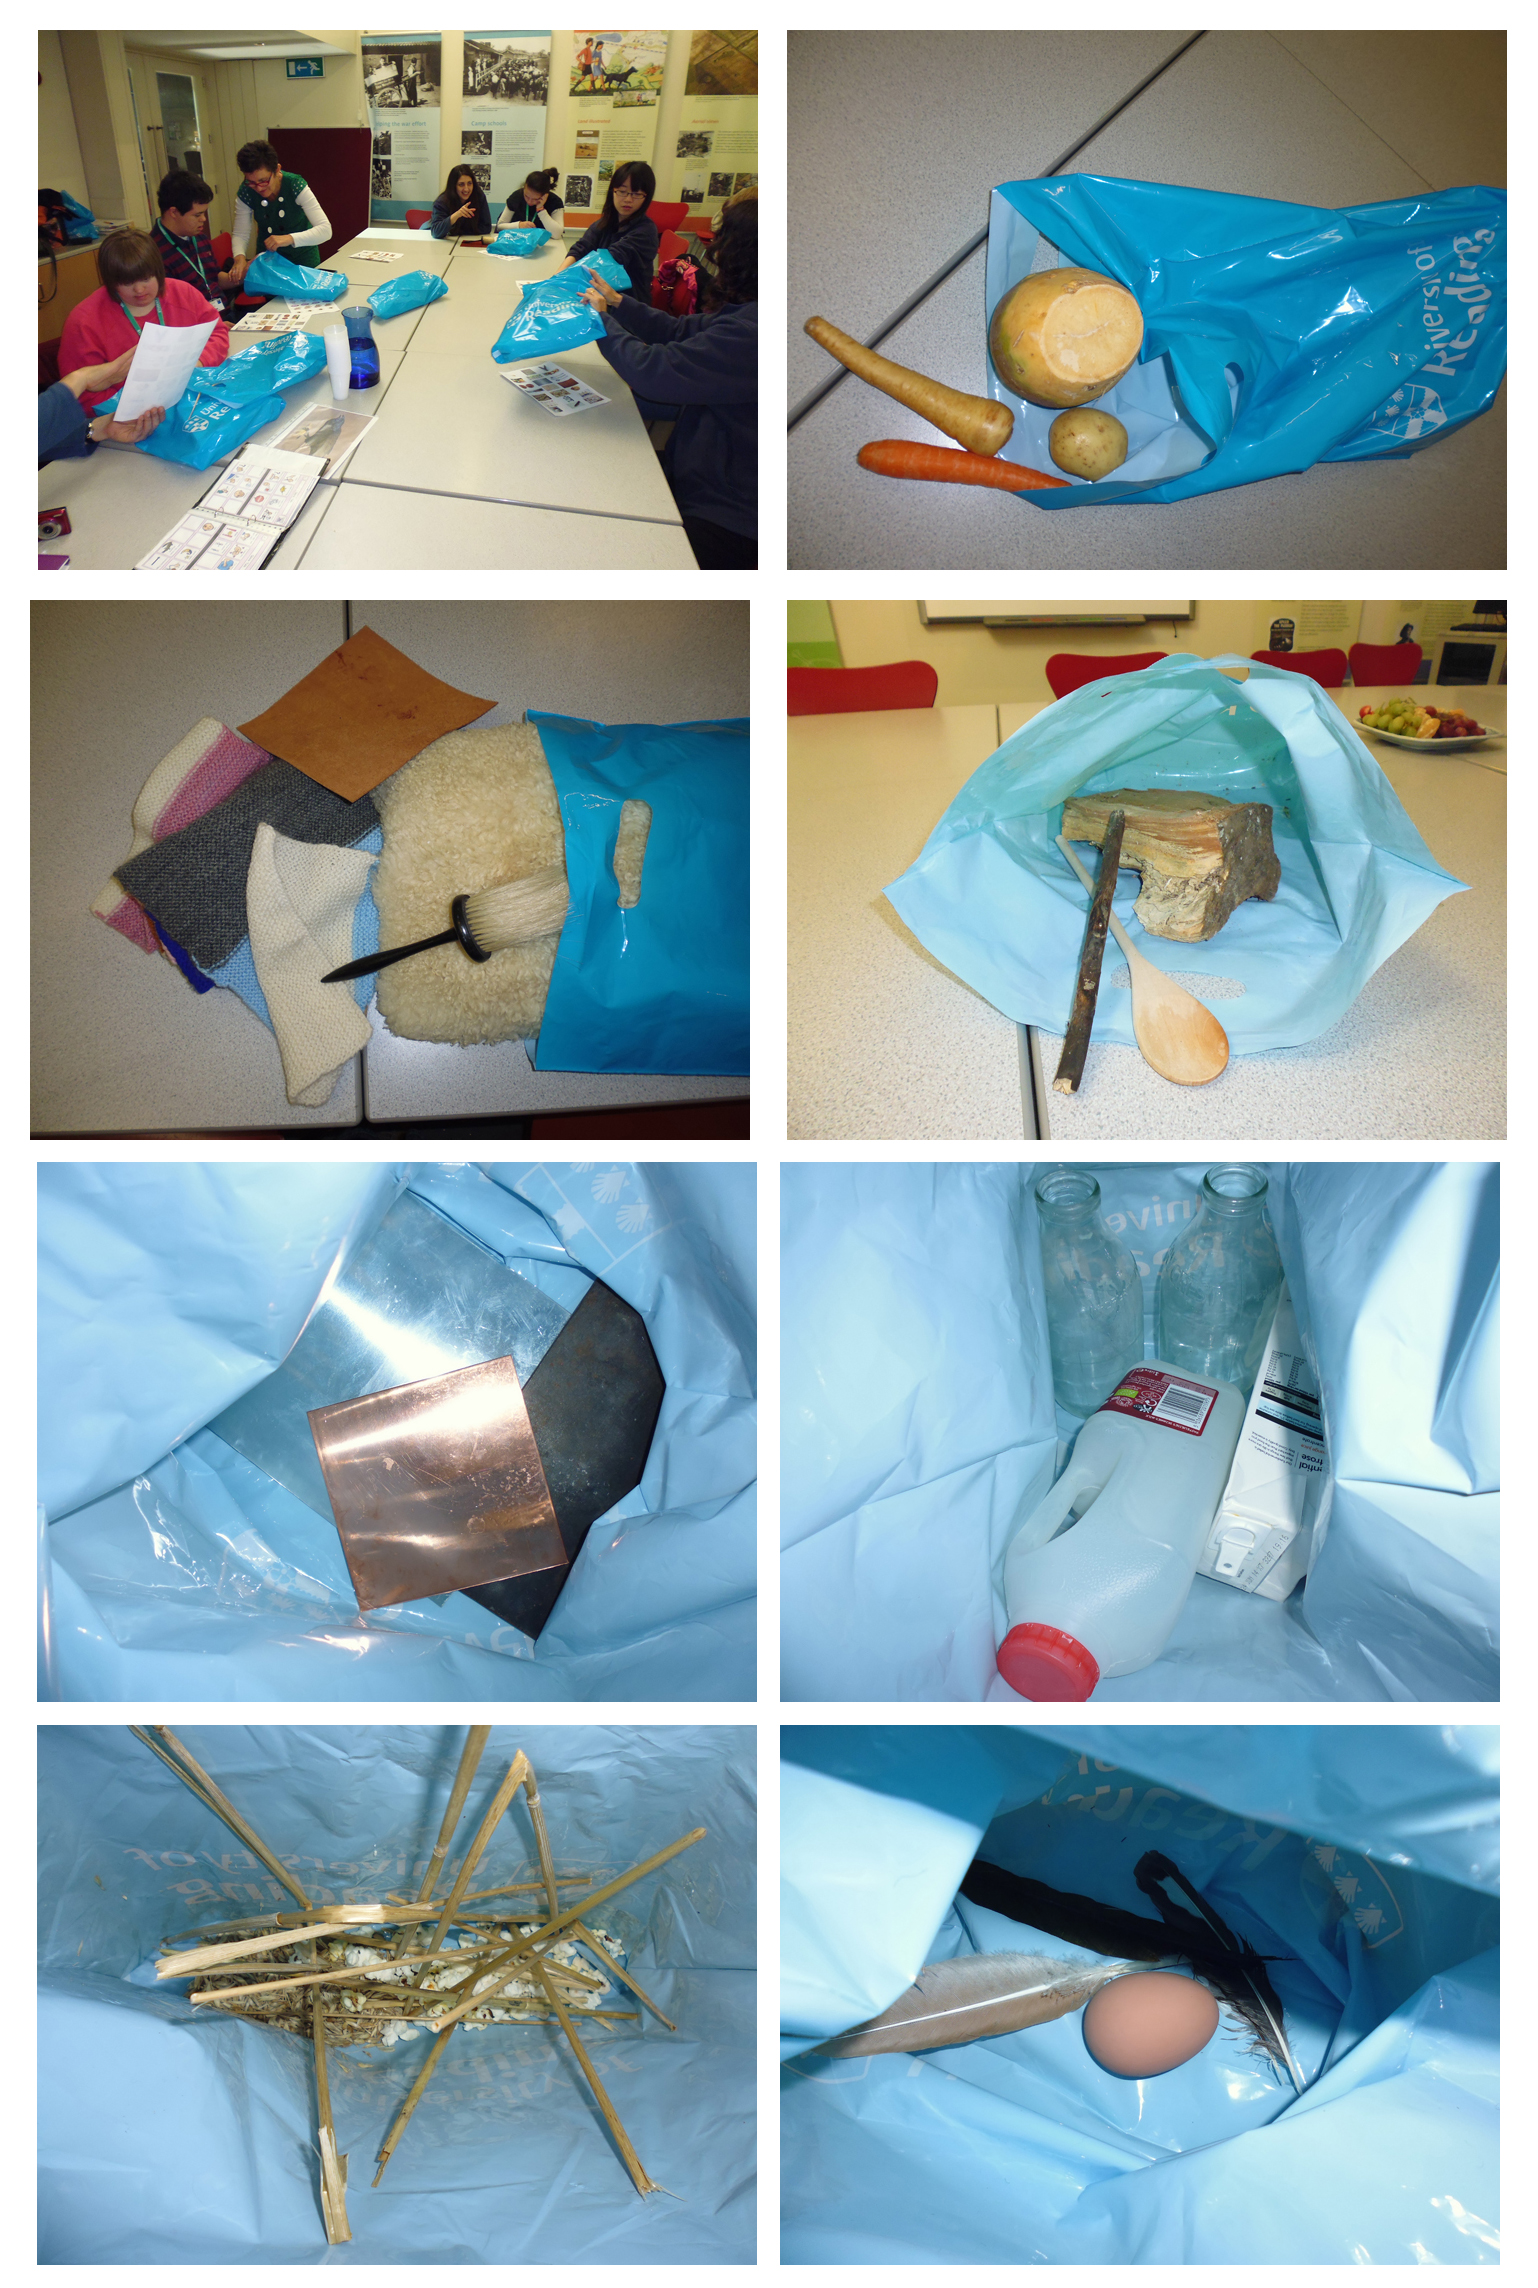 Seven bags with materials inside